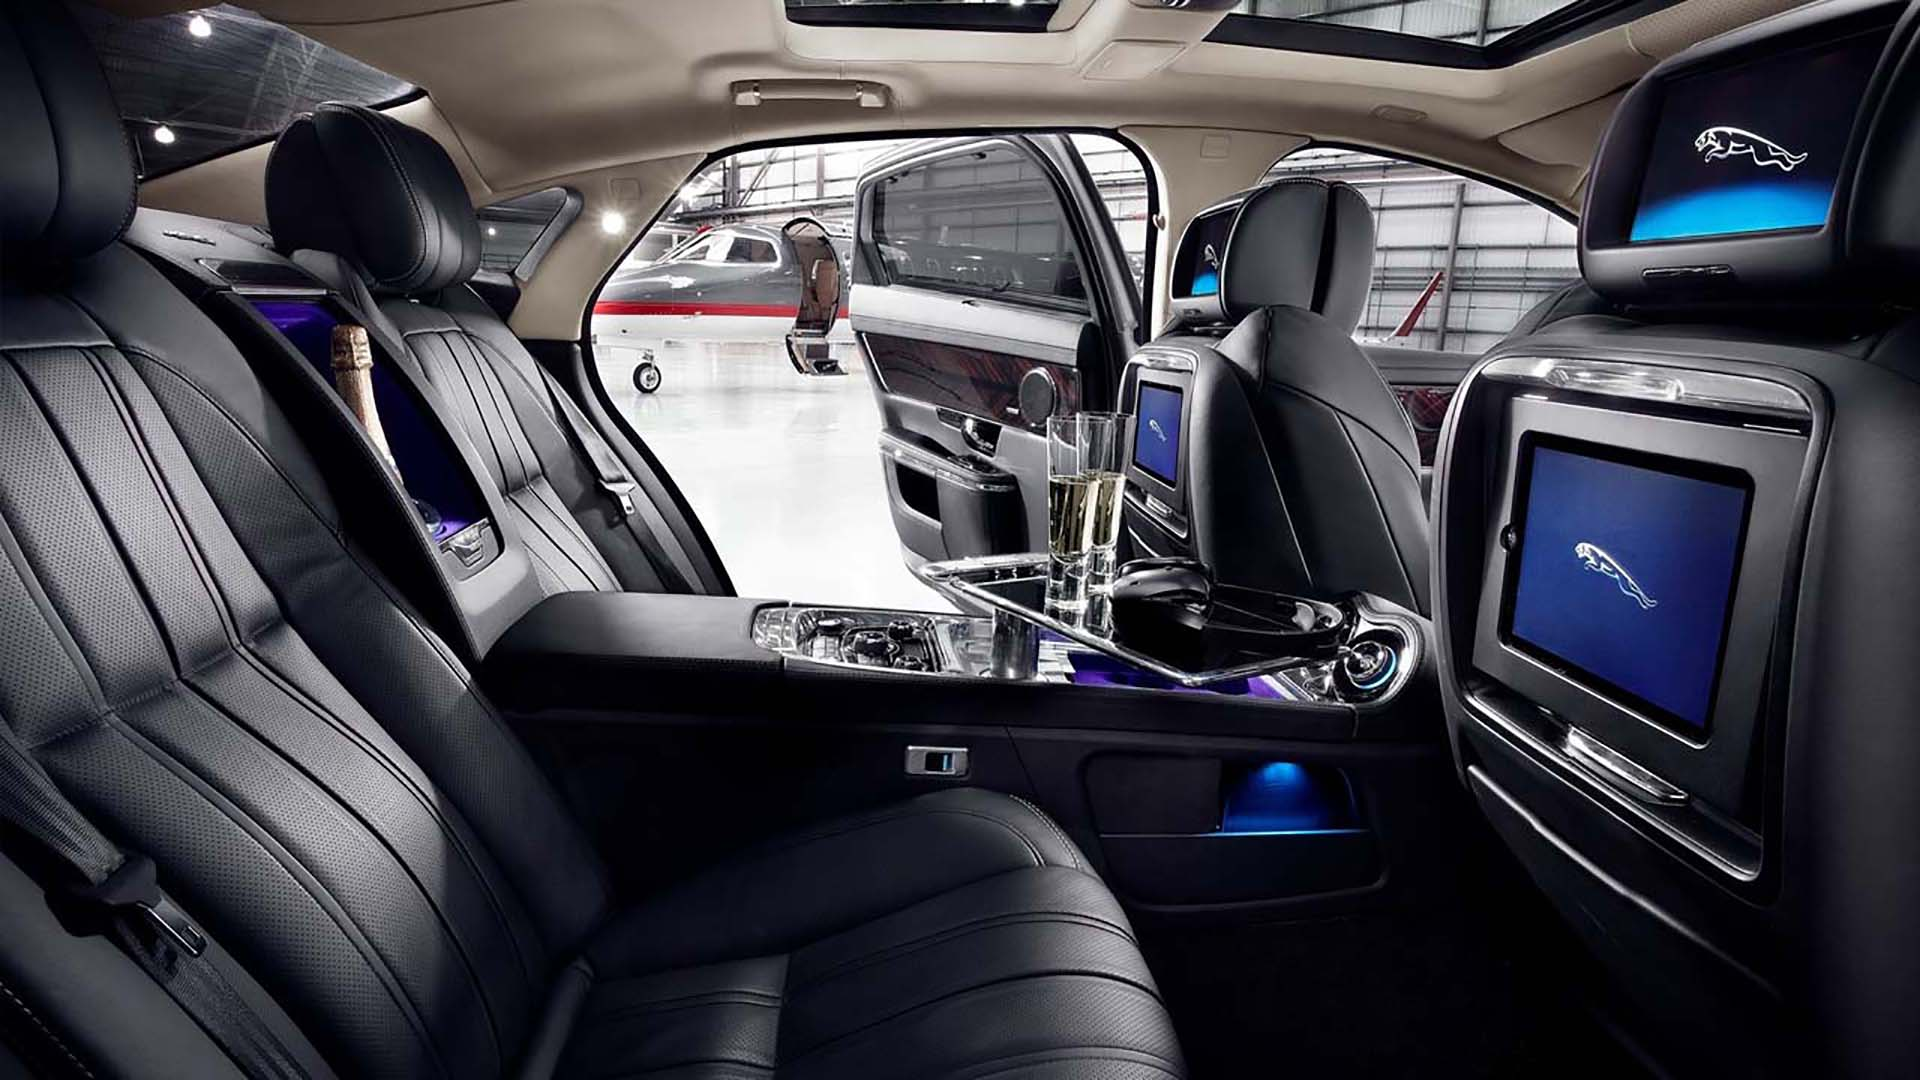 Jaguar XJ Ultimate Edition Luxury Rear Environment by ADP Special Projects